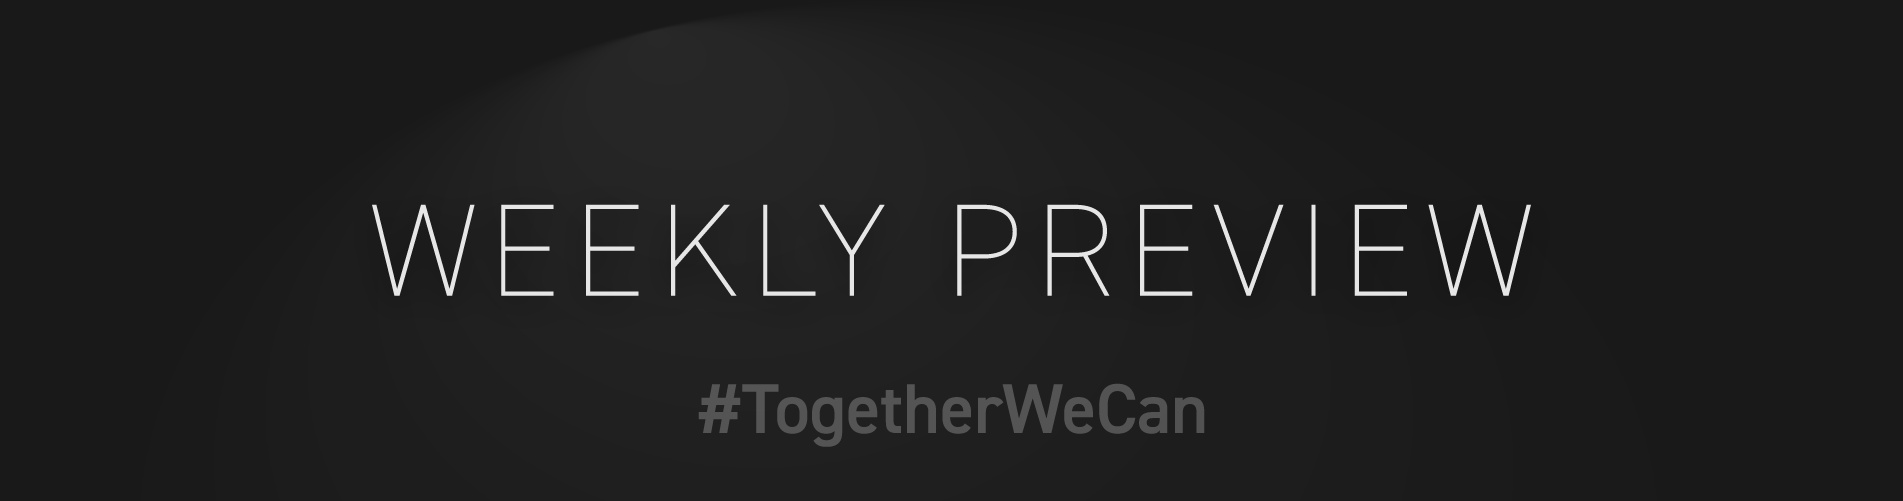 Weekly-preview